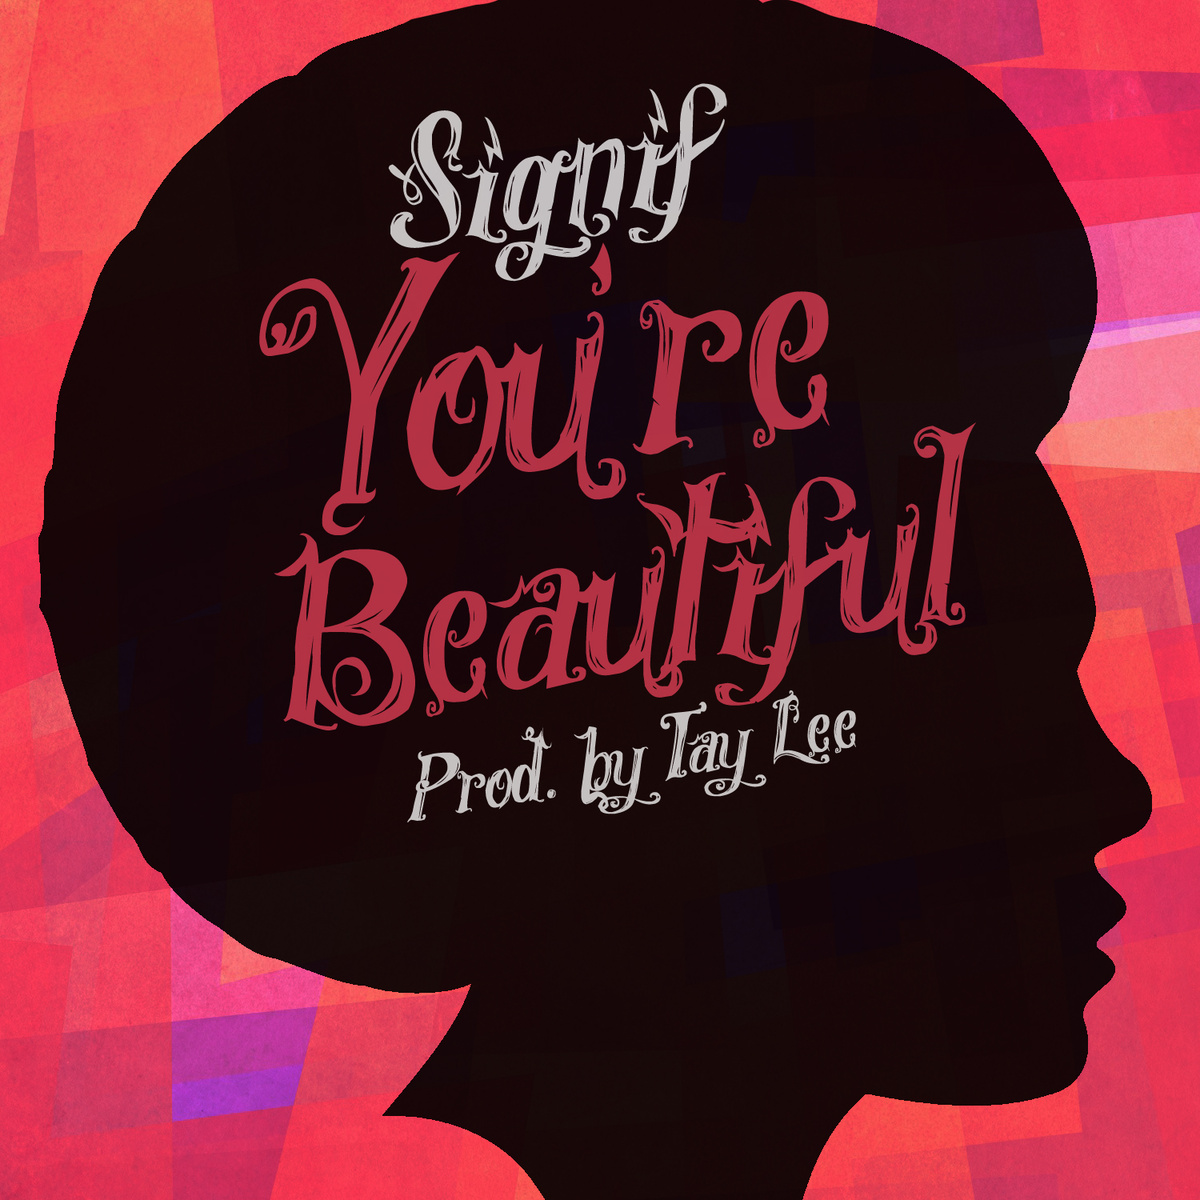 signif Your beautiful